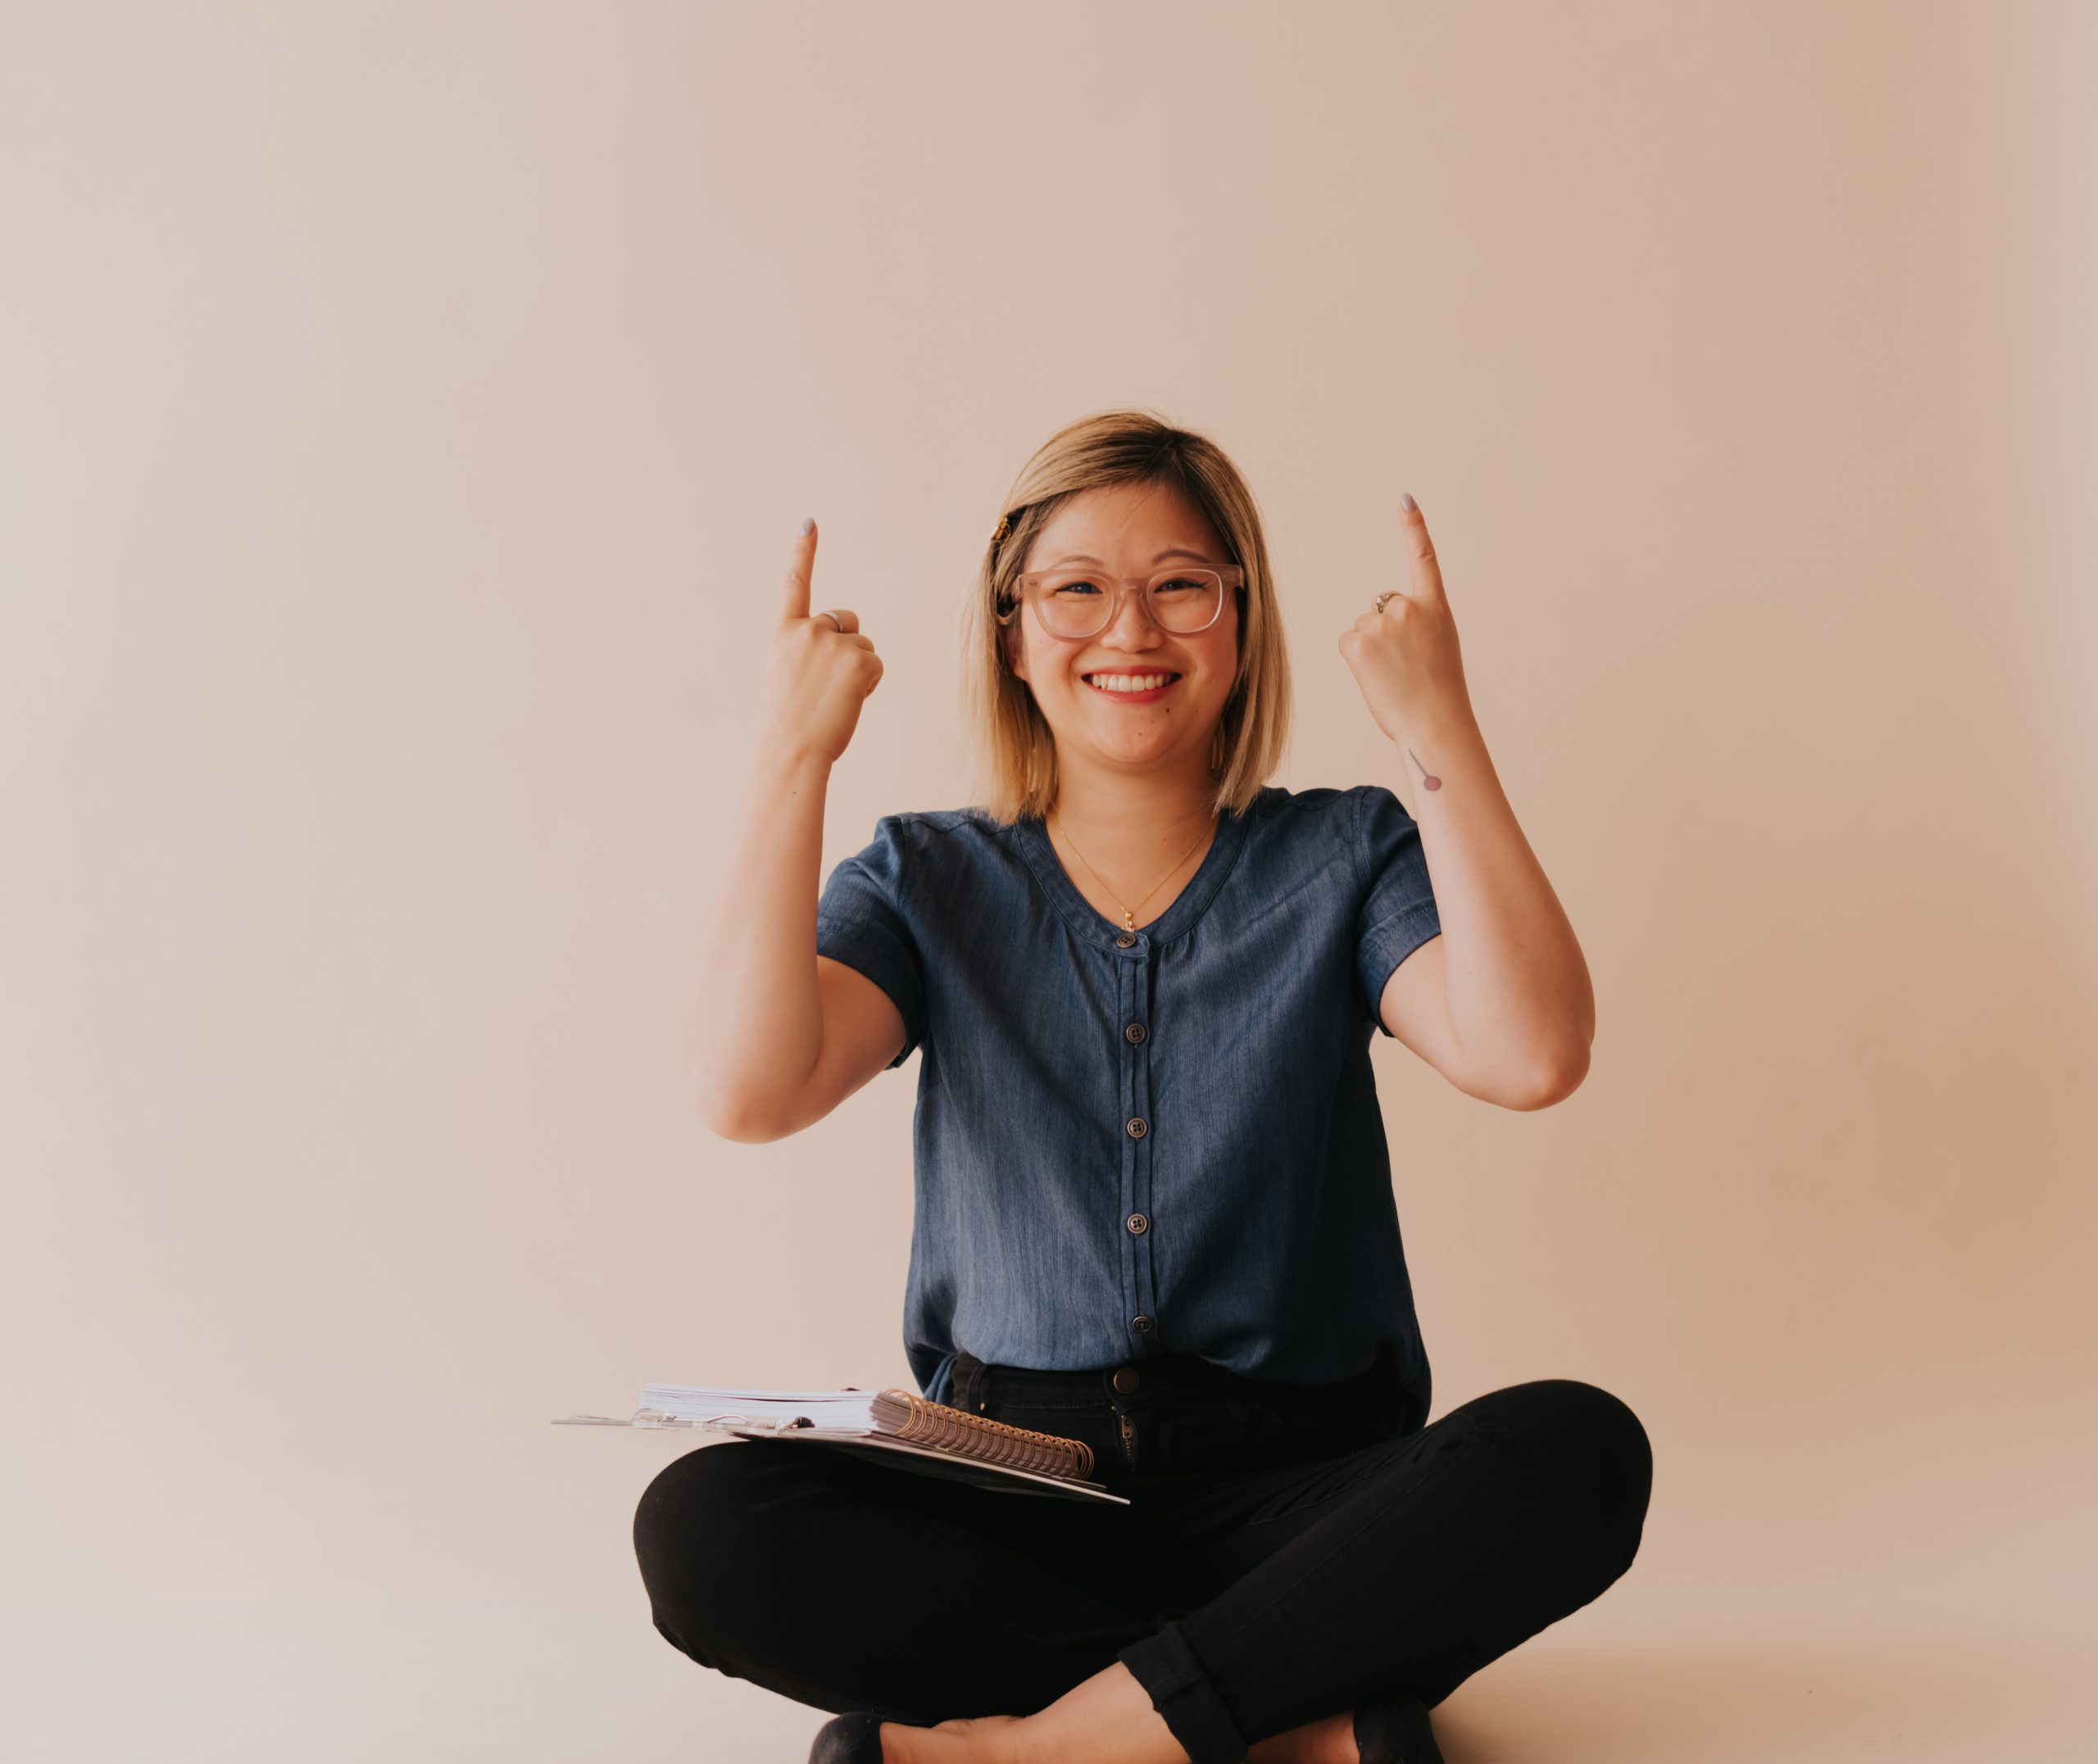 Woman sitting cross-legged on the floor pointing up with both index fingers